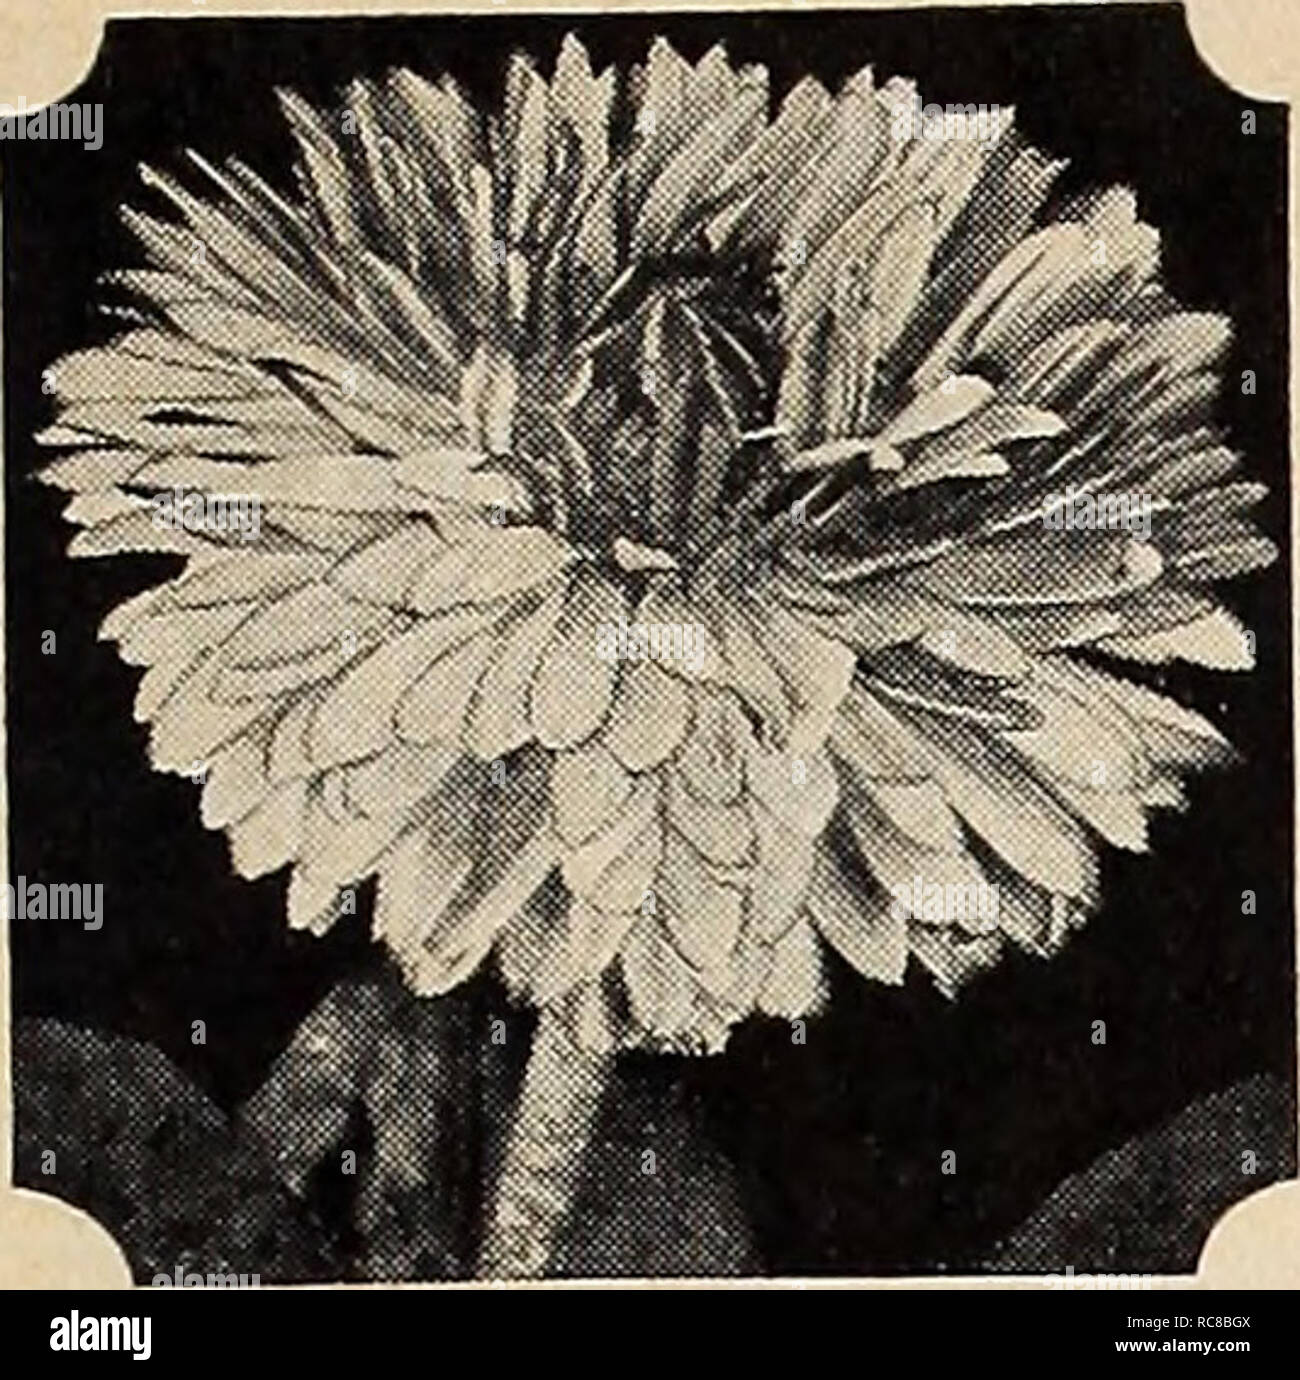 . Dreer's garden book for 1941. Seeds Catalogs; Nursery stock Catalogs; Gardening Equipment and supplies Catalogs; Flowers Seeds Catalogs; Vegetables Seeds Catalogs; Fruit Seeds Catalogs. HENRY A. DREER, Inc., Philadelphia, Pa.. Bellis, English Daisy BelliS English Daisy ® A <D Our special strain produces fully double flowers of truly enormous size. They bloom profusely from early spring until late fall. Plant in soil which is moderately moist and does not lack fertility. 6 in. 1491 Giant Double Crimson (New). Pkt. 25c; special pkt. 75c. 1494 — Double White. Pkt. 15c; large pkt. 60c. 1500 D - Stock Image